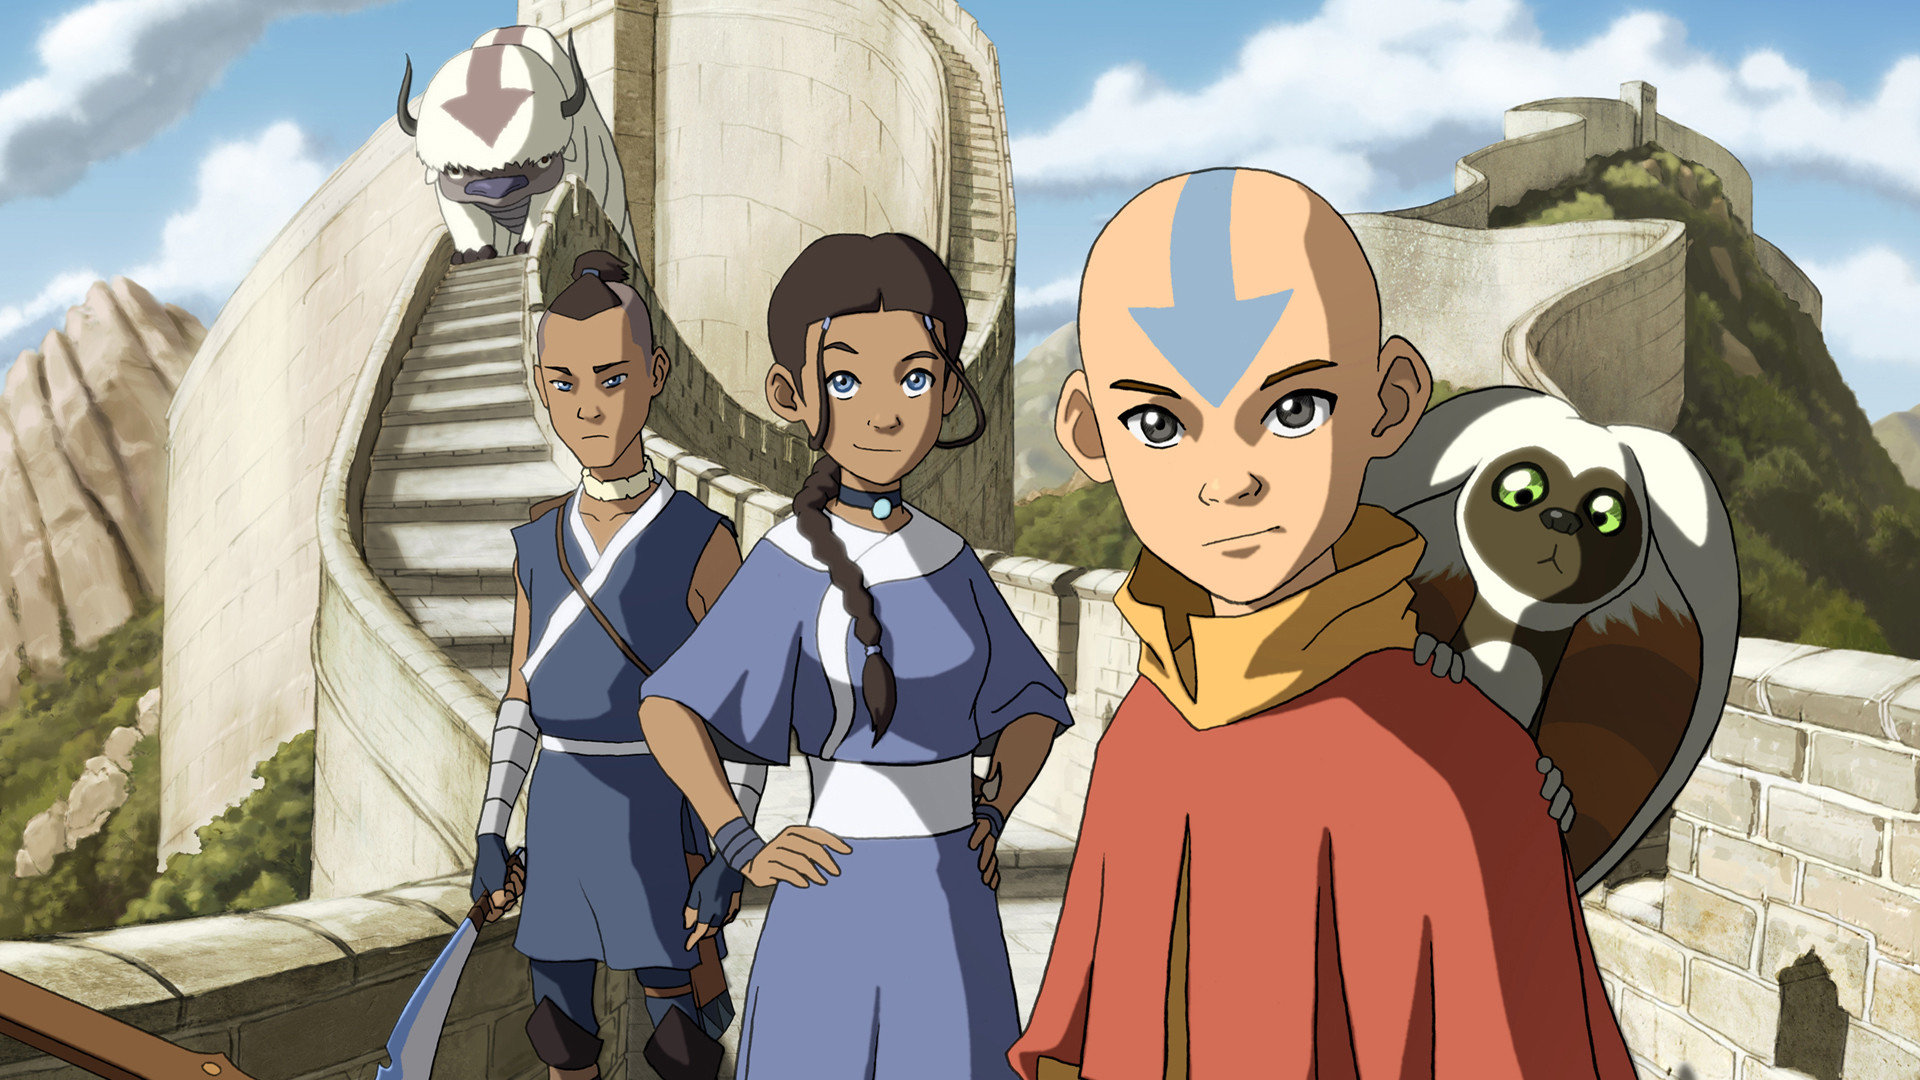 Avatar The Last Airbender HD Backgrounds For 1920x1080 Full 1080p Desktop